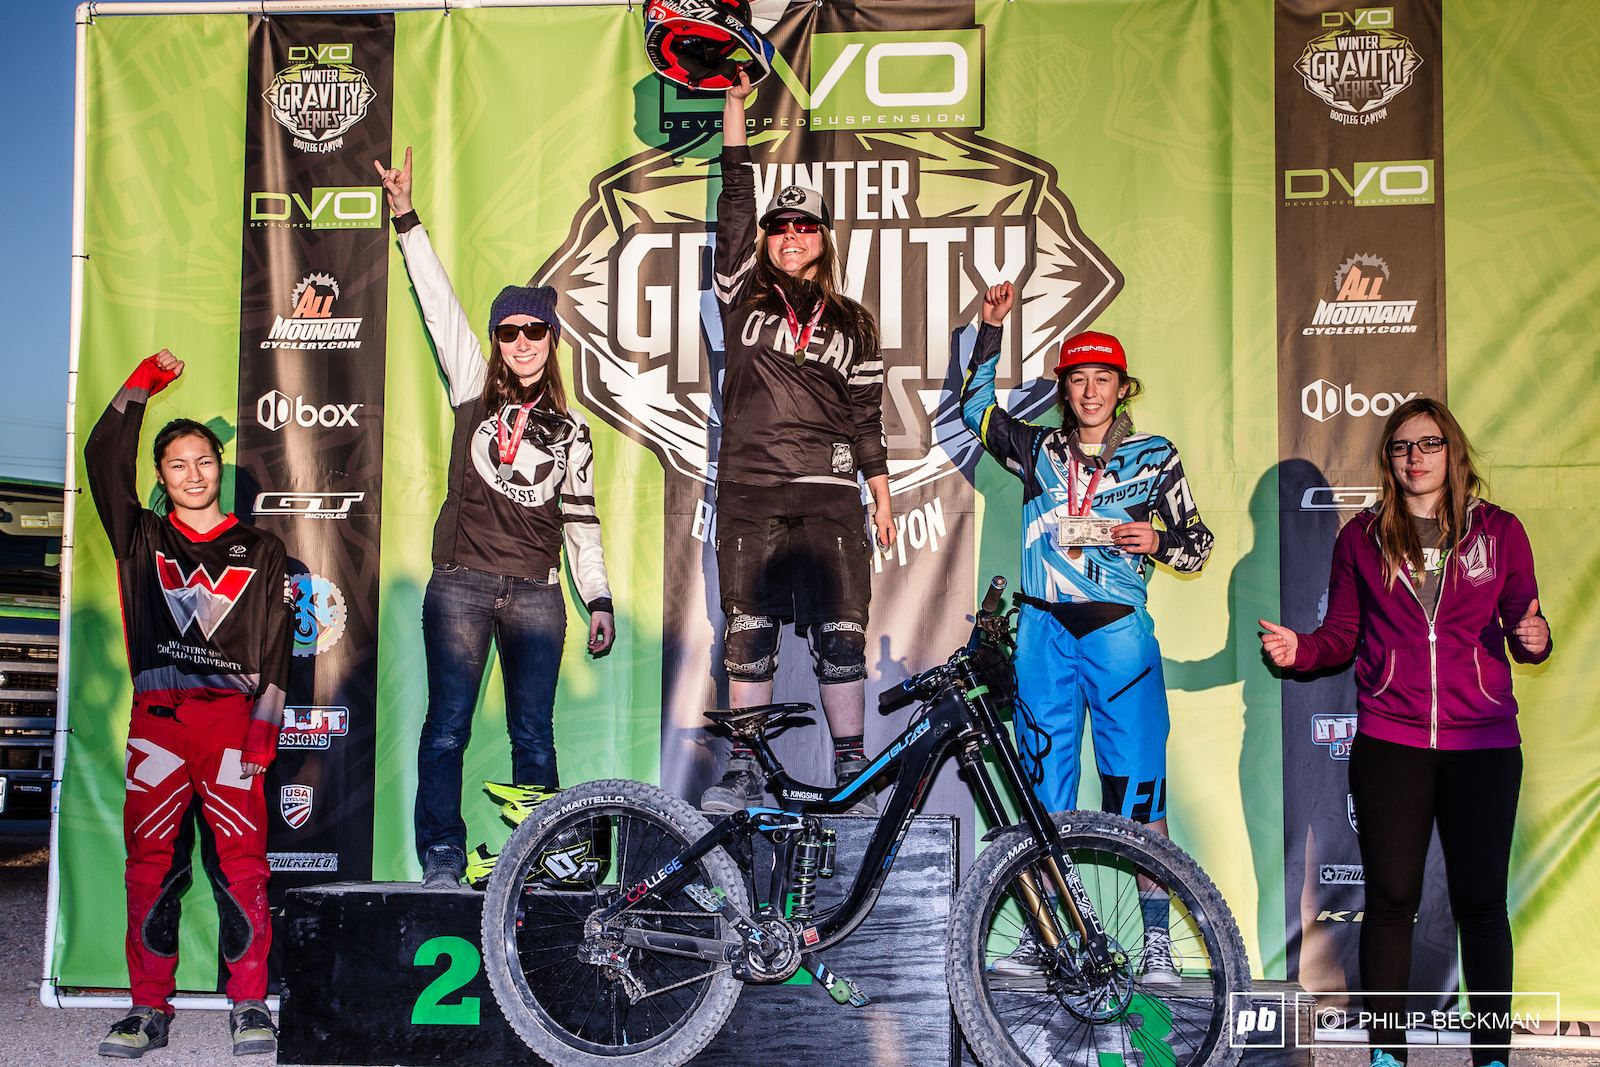 The Pro Women s podium featured reigning National Champ Samantha Kingshill College Cyclery O Neal Truckerco at the peak attended by CJ Selig Truckerco Five10 DVO Emily Gacad Incycle Intense Ming Goetz and Lecksi Winger Ellsworth .